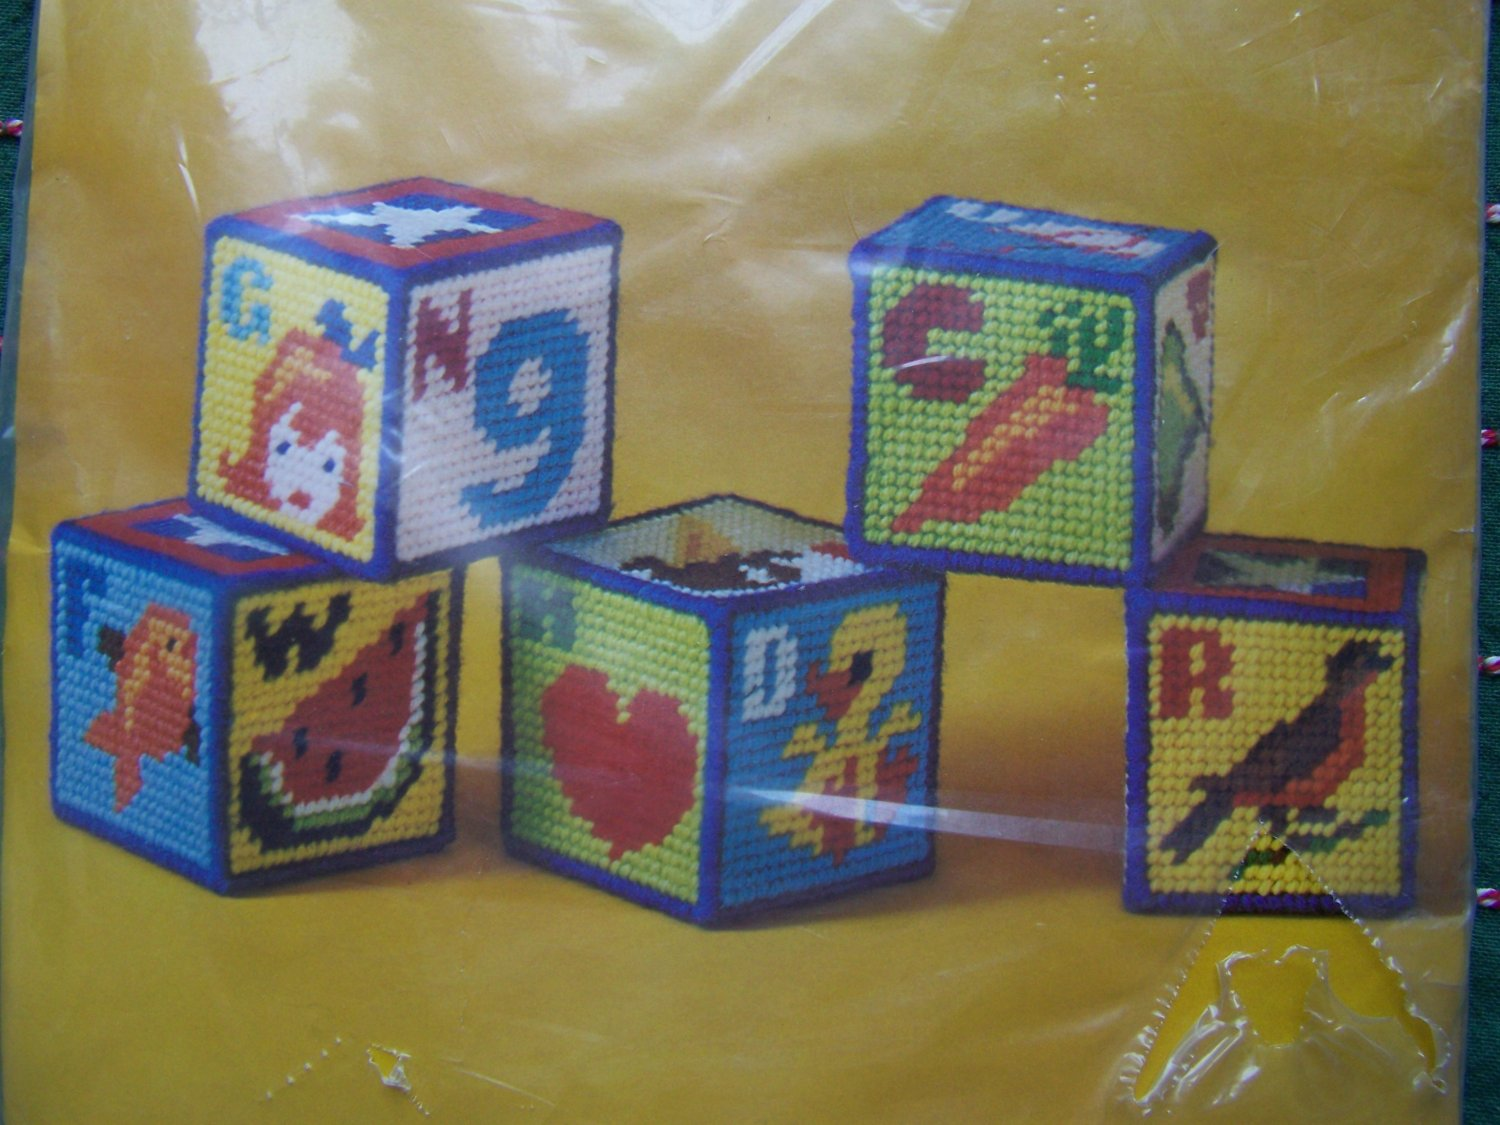 1970s Vintage Baby Blocks Plastic Canvas Craft Kit Columbia Minerva Needlepoint